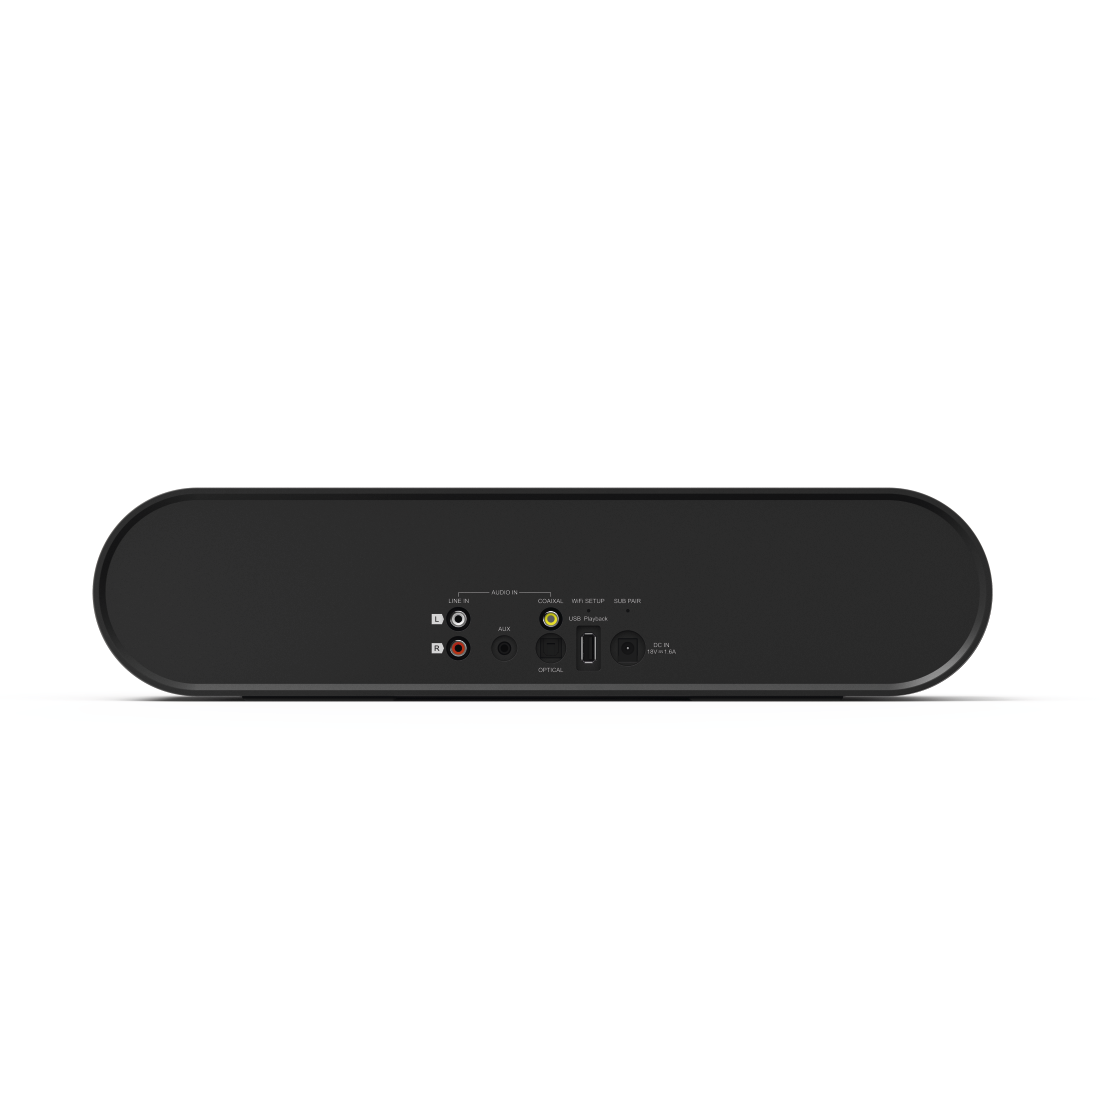 abx2 High-Res Image 2 - Hama, SIRIUM3800ABT Smart Sound Bar BT/ALEXA